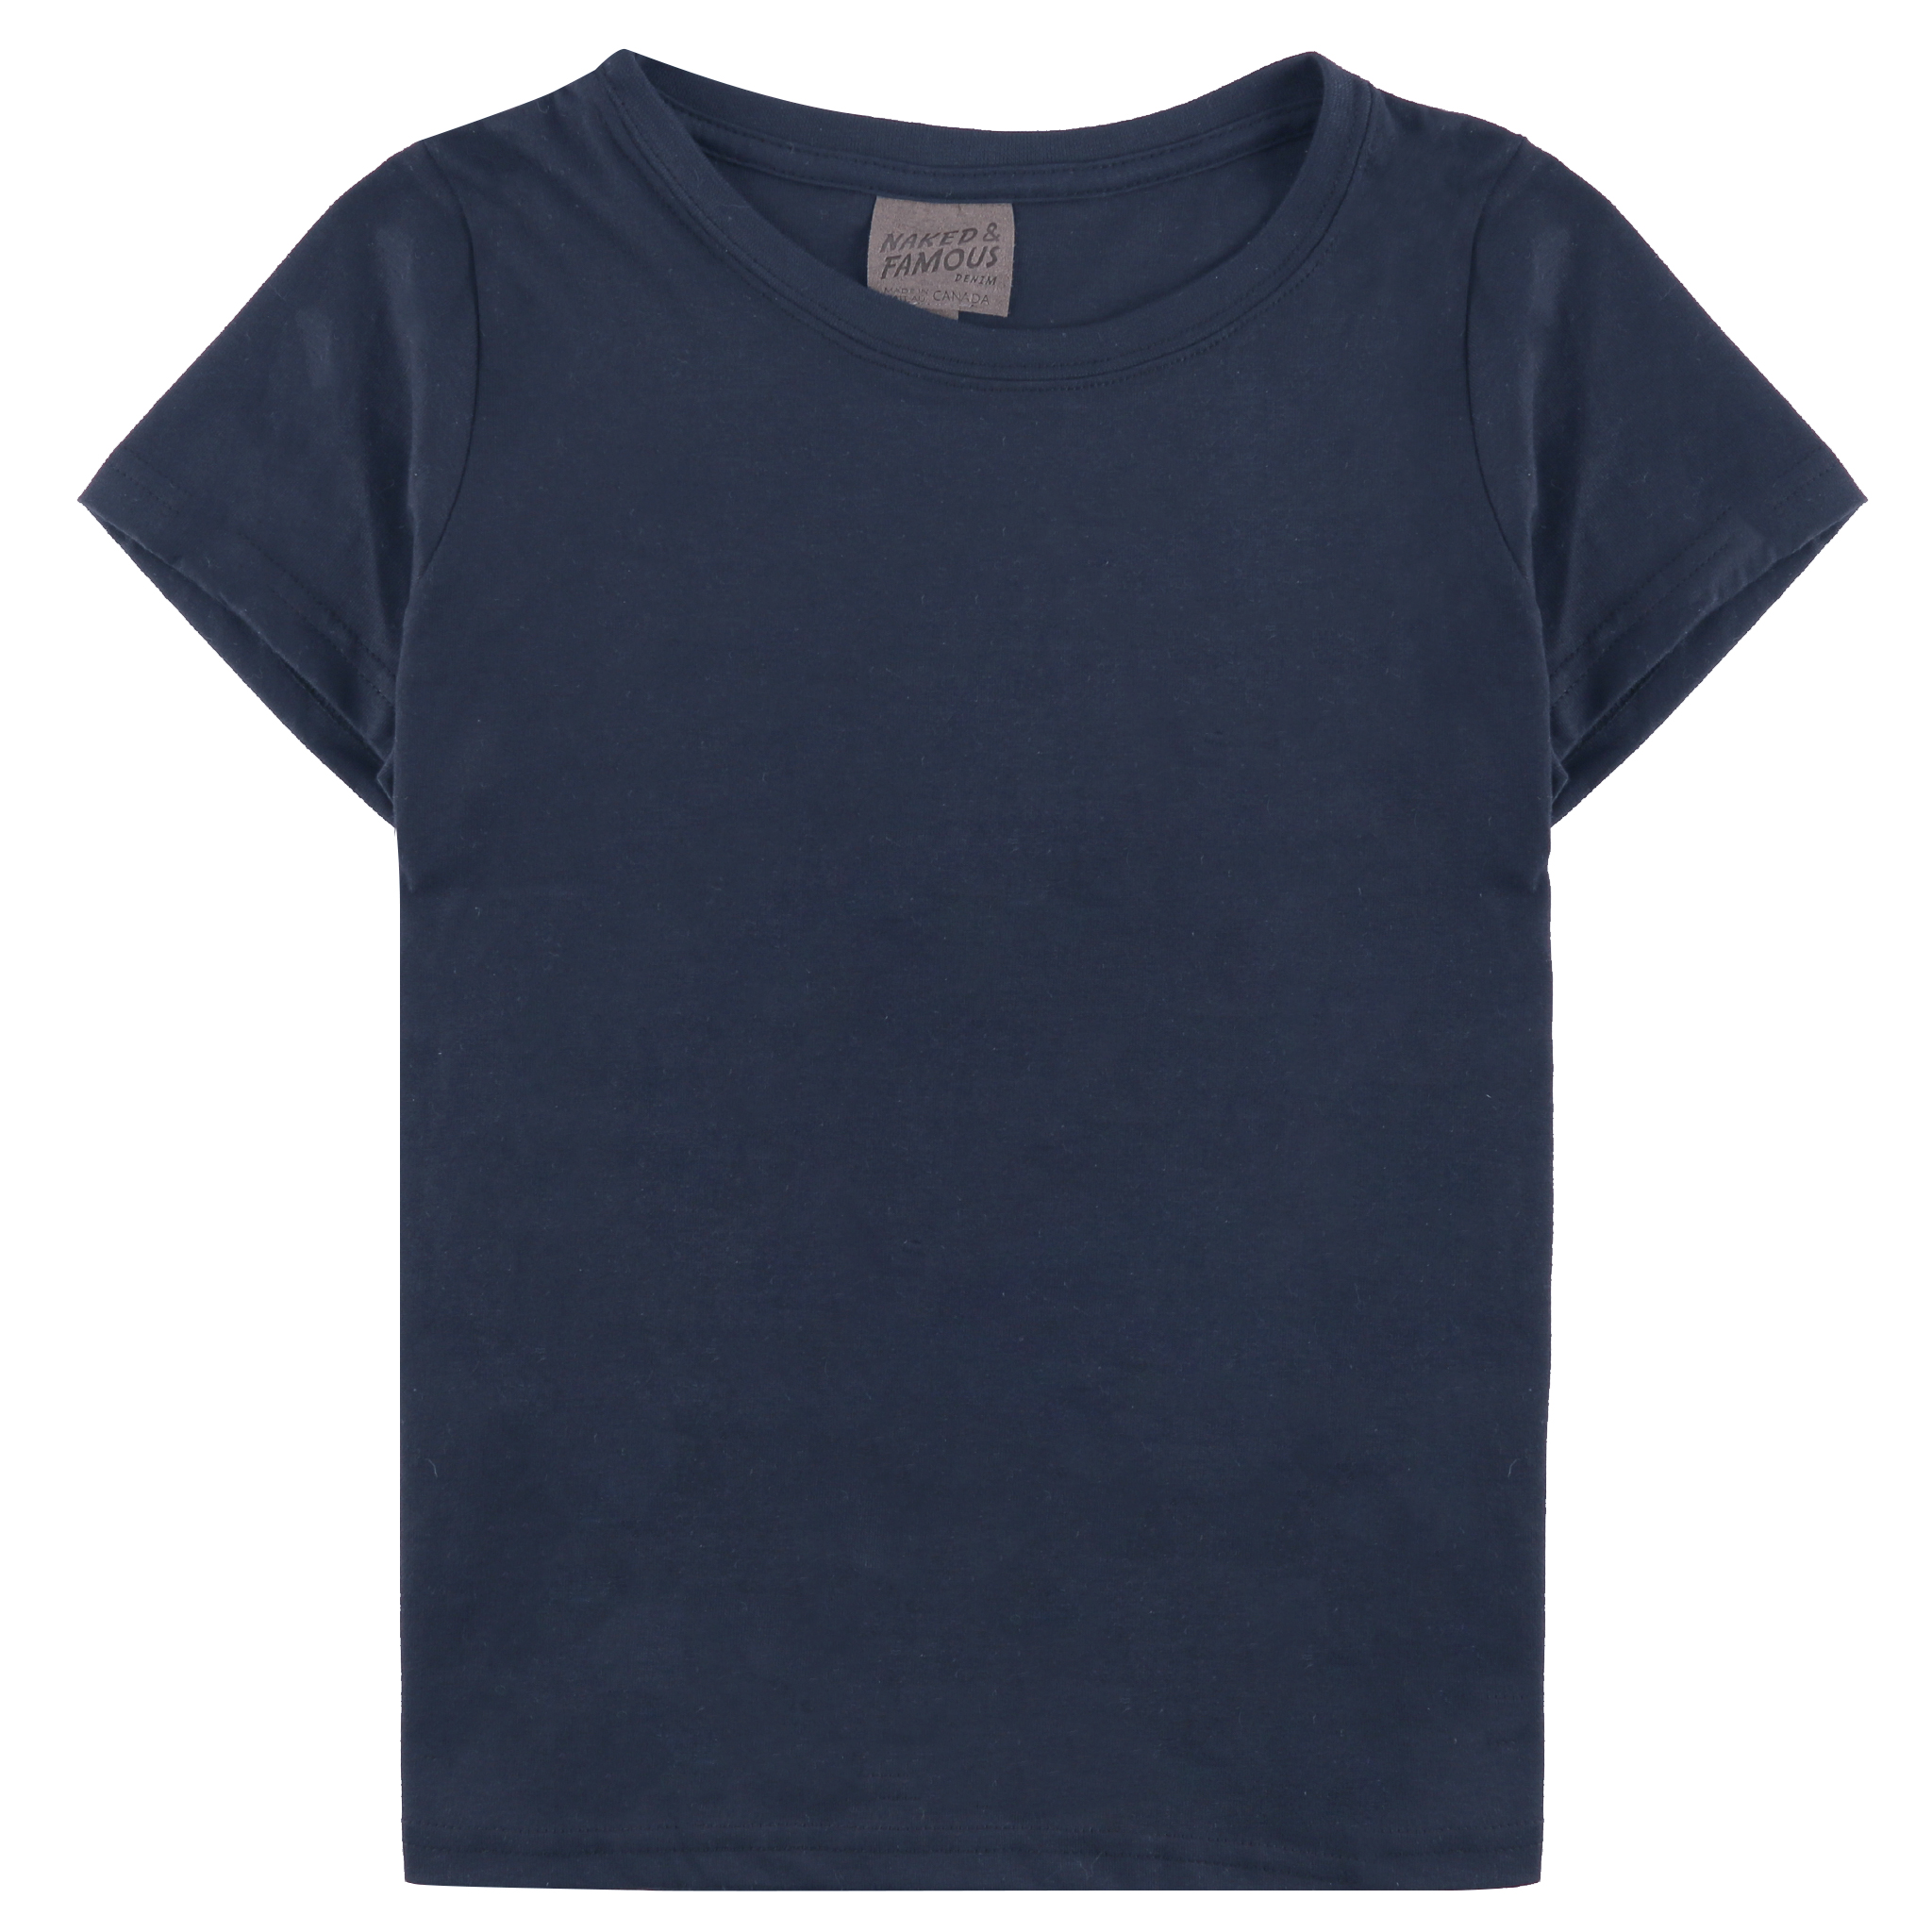 NAVY RINGSPUN COTTON - Circular T-Shirt